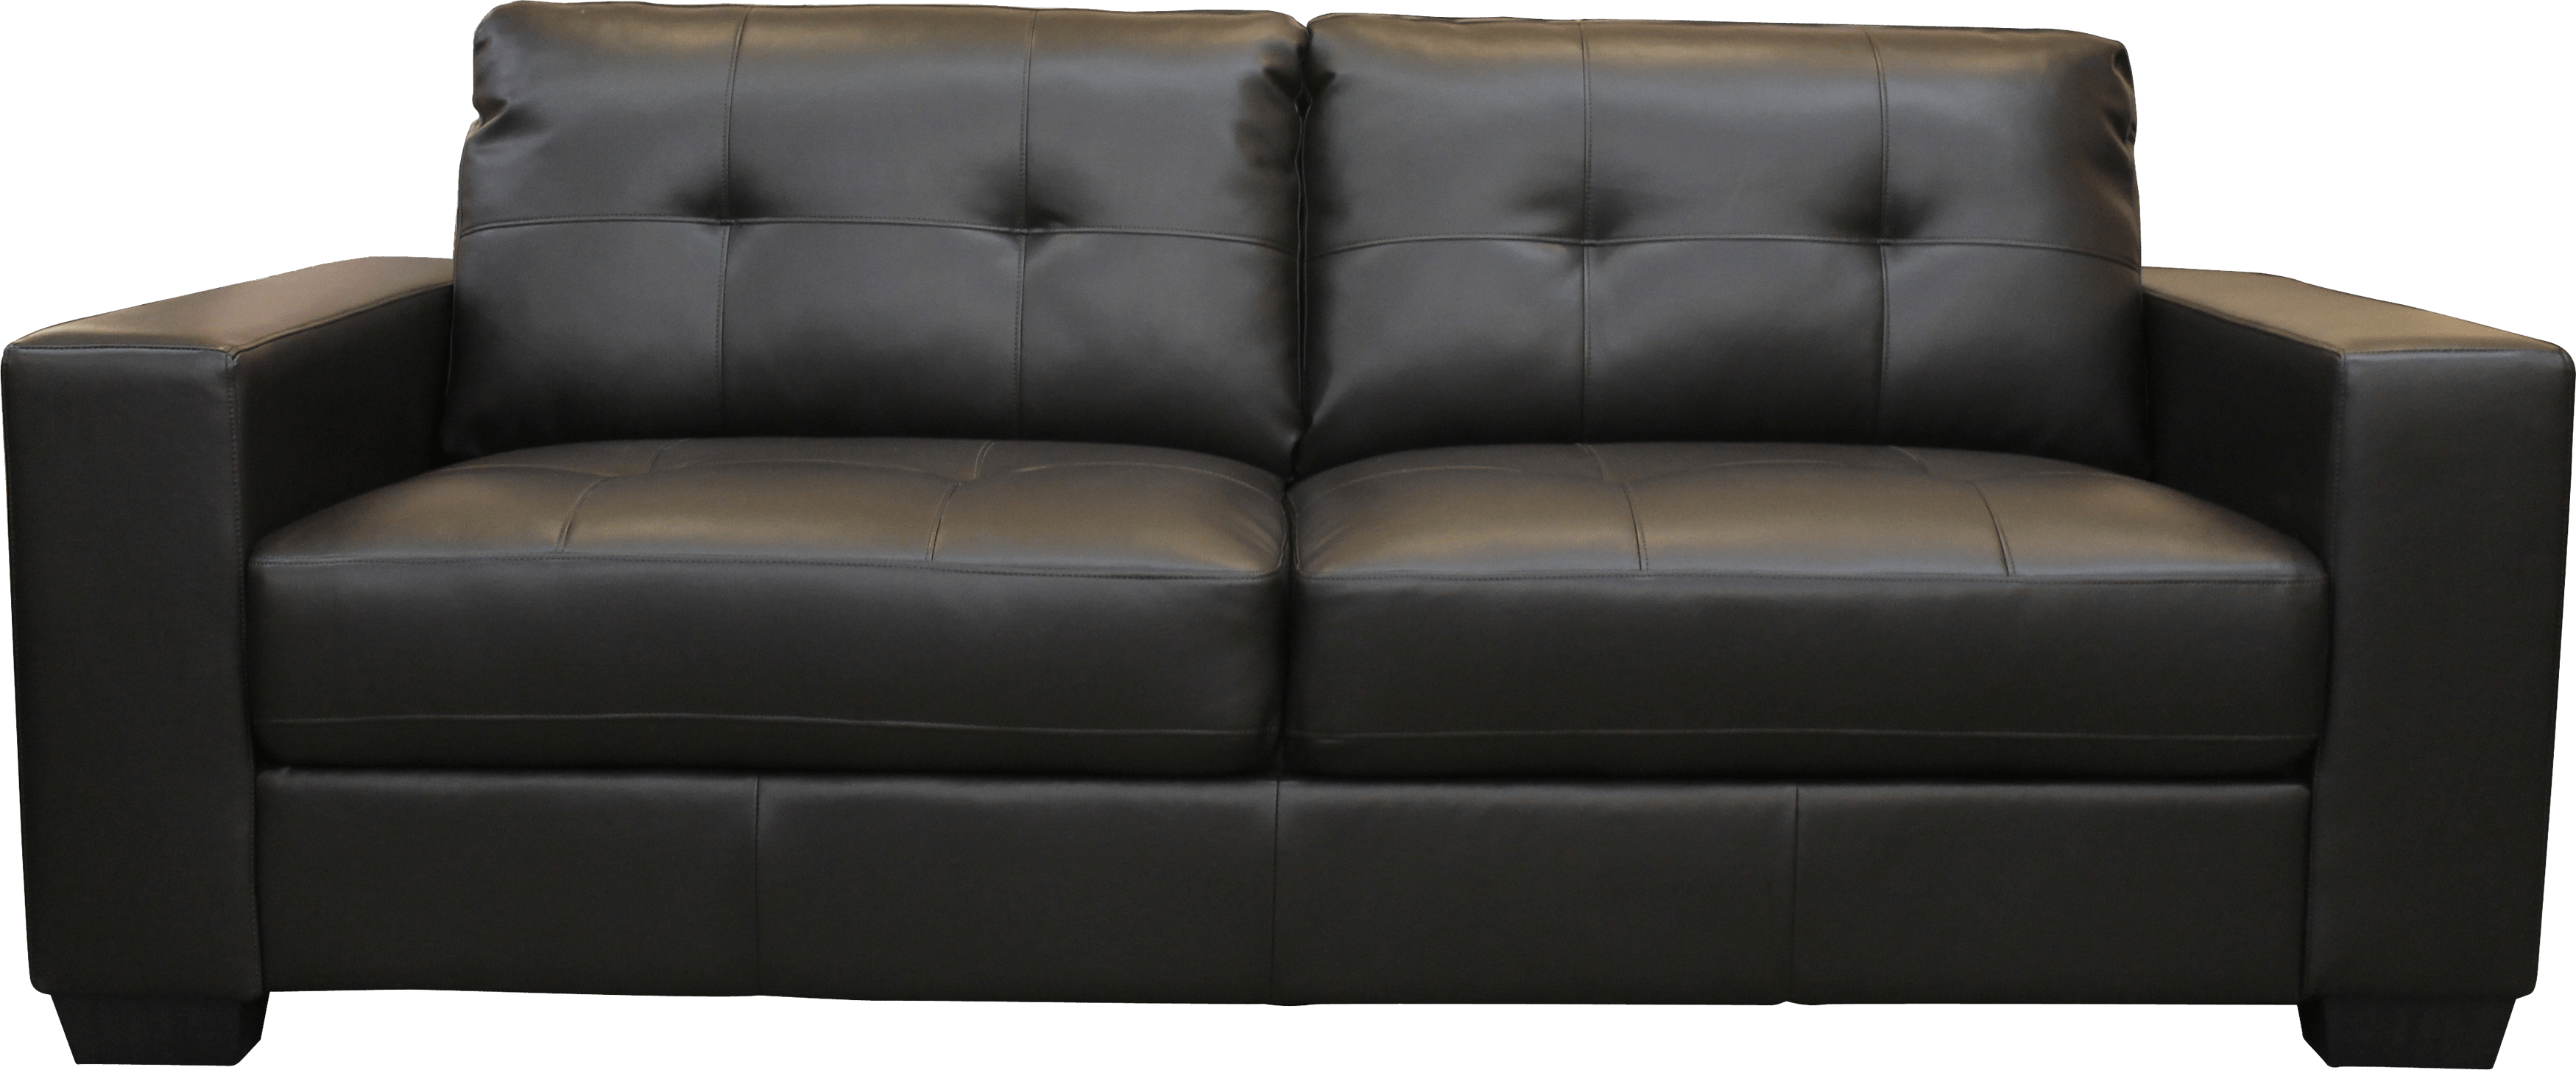 Sofá Preto Free Sofa Png Transparent Images Download Free Clip Art